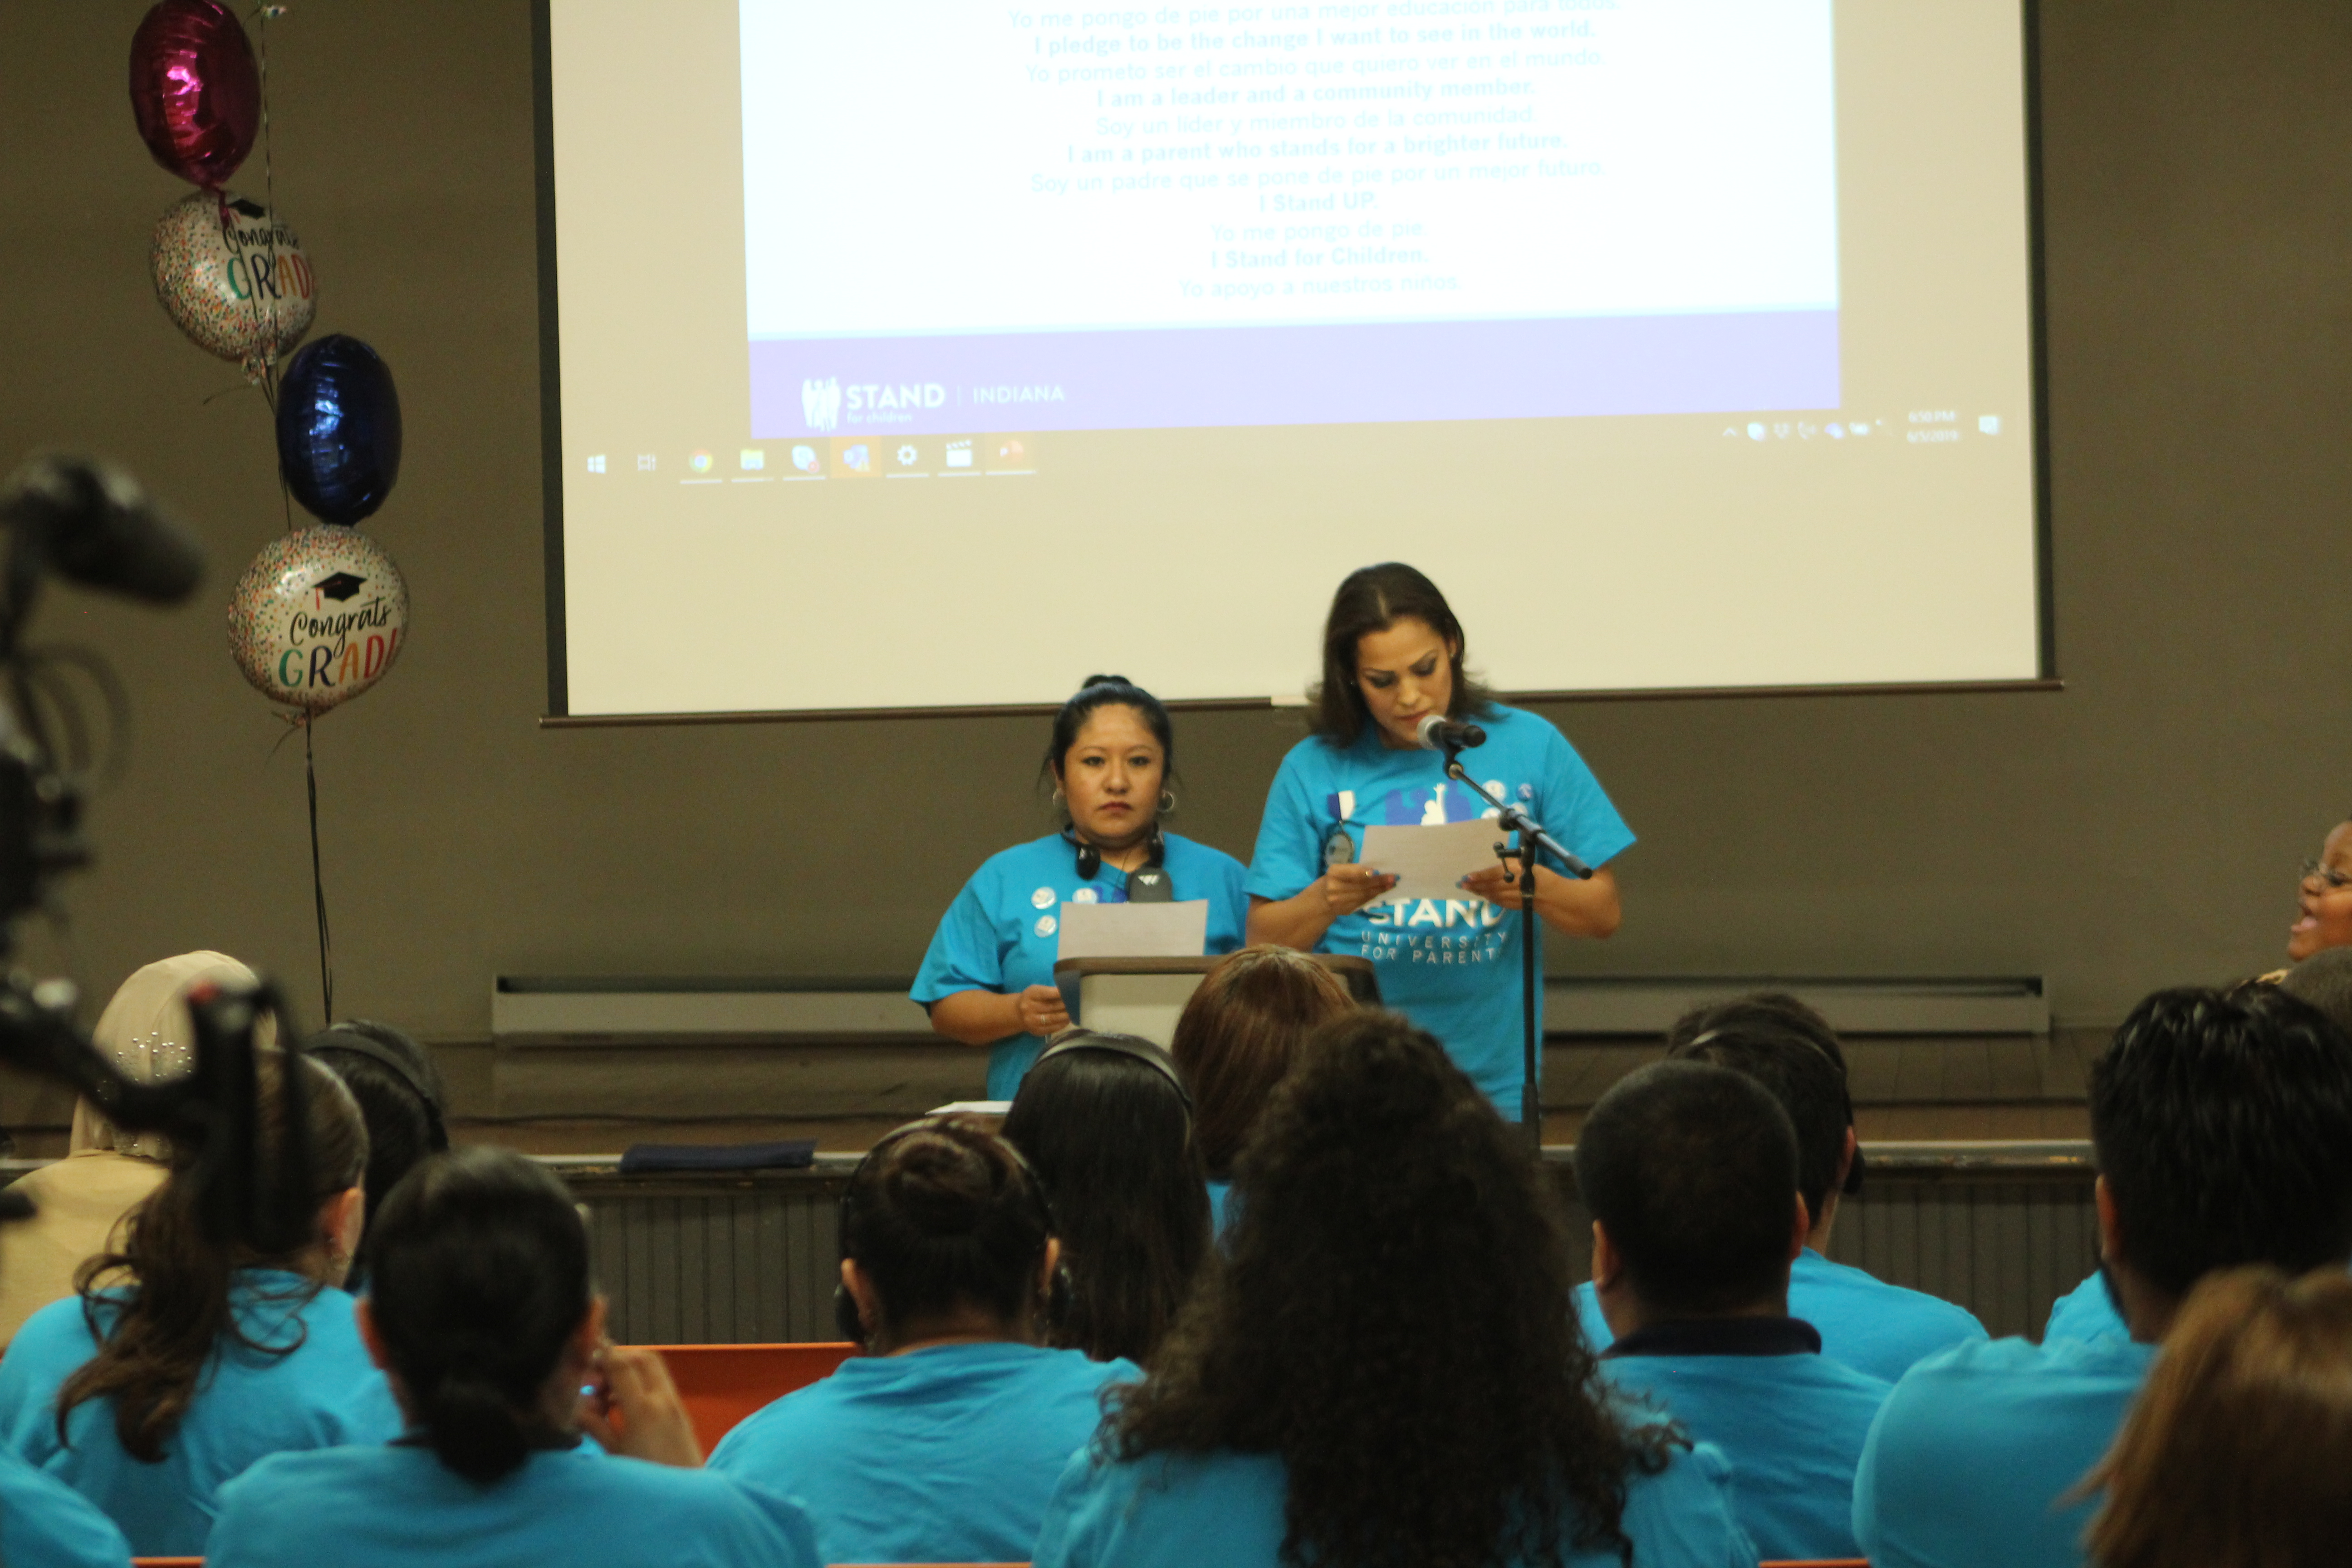 Stand UP parents Edith Aguilar and Angelina Olmedo read their organization's pledge at a graduation ceremony Wednesday.